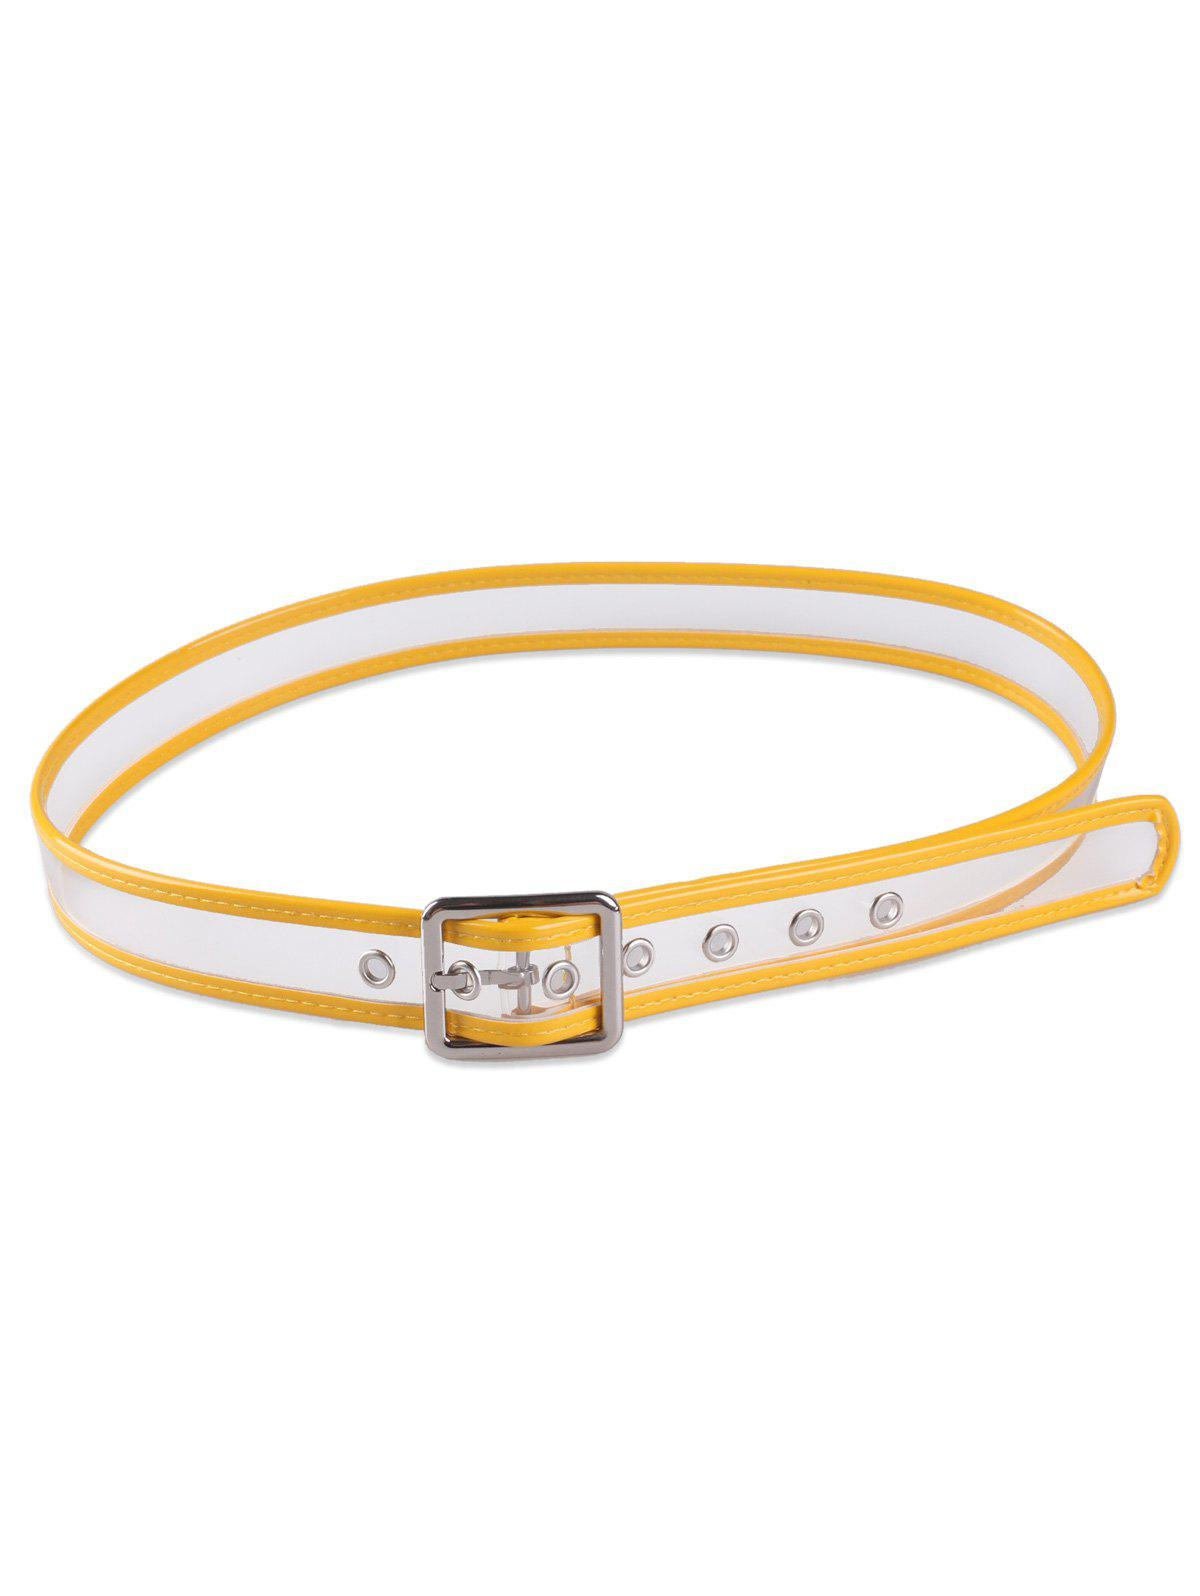 Candy Color Brim Transparent Pin Buckle Belt - Jaune